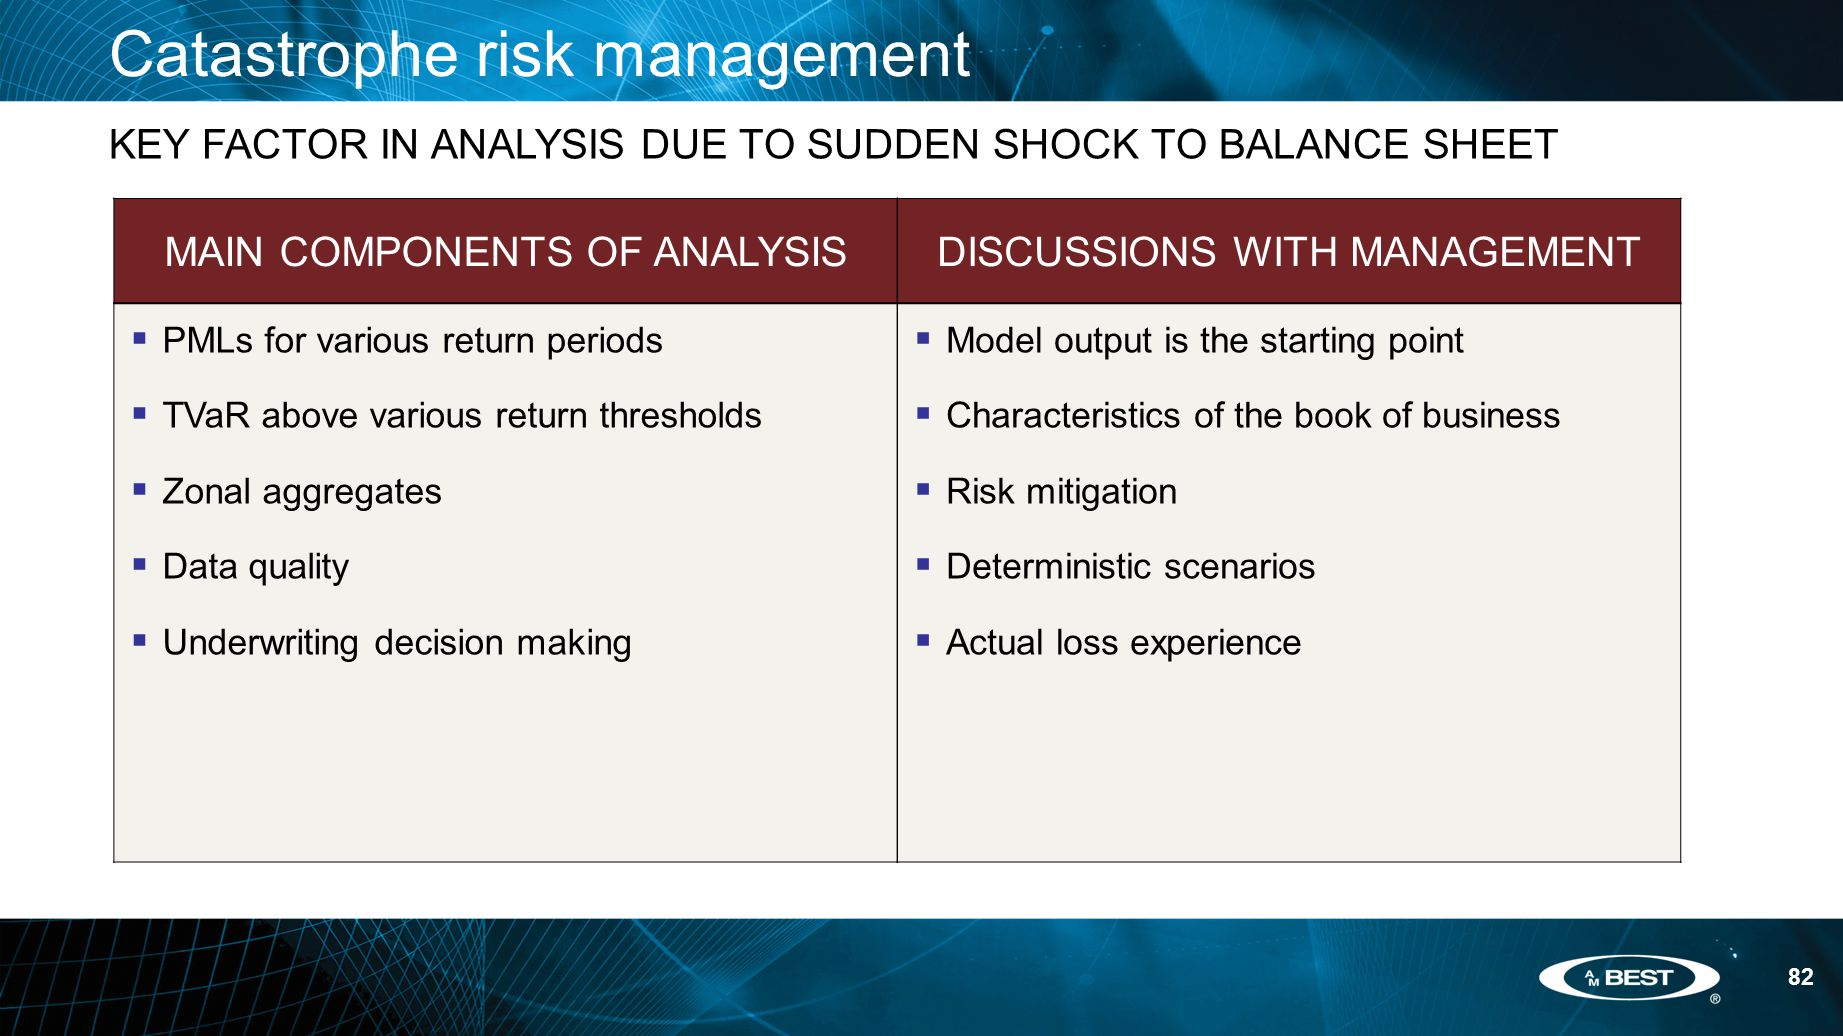 82 Catastrophe risk management KEY FACTOR IN ANALYSIS DUE TO SUDDEN SHOCK TO BALANCE SHEET MAIN COMPONENTS OF ANALYSIS  PMLs for various return periods  TVaR above various return thresholds  Zonal aggregates  Data quality  Underwriting decision making DISCUSSIONS WITH MANAGEMENT  Model output is the starting point  Characteristics of the book of business  Risk mitigation  Deterministic scenarios  Actual loss experience